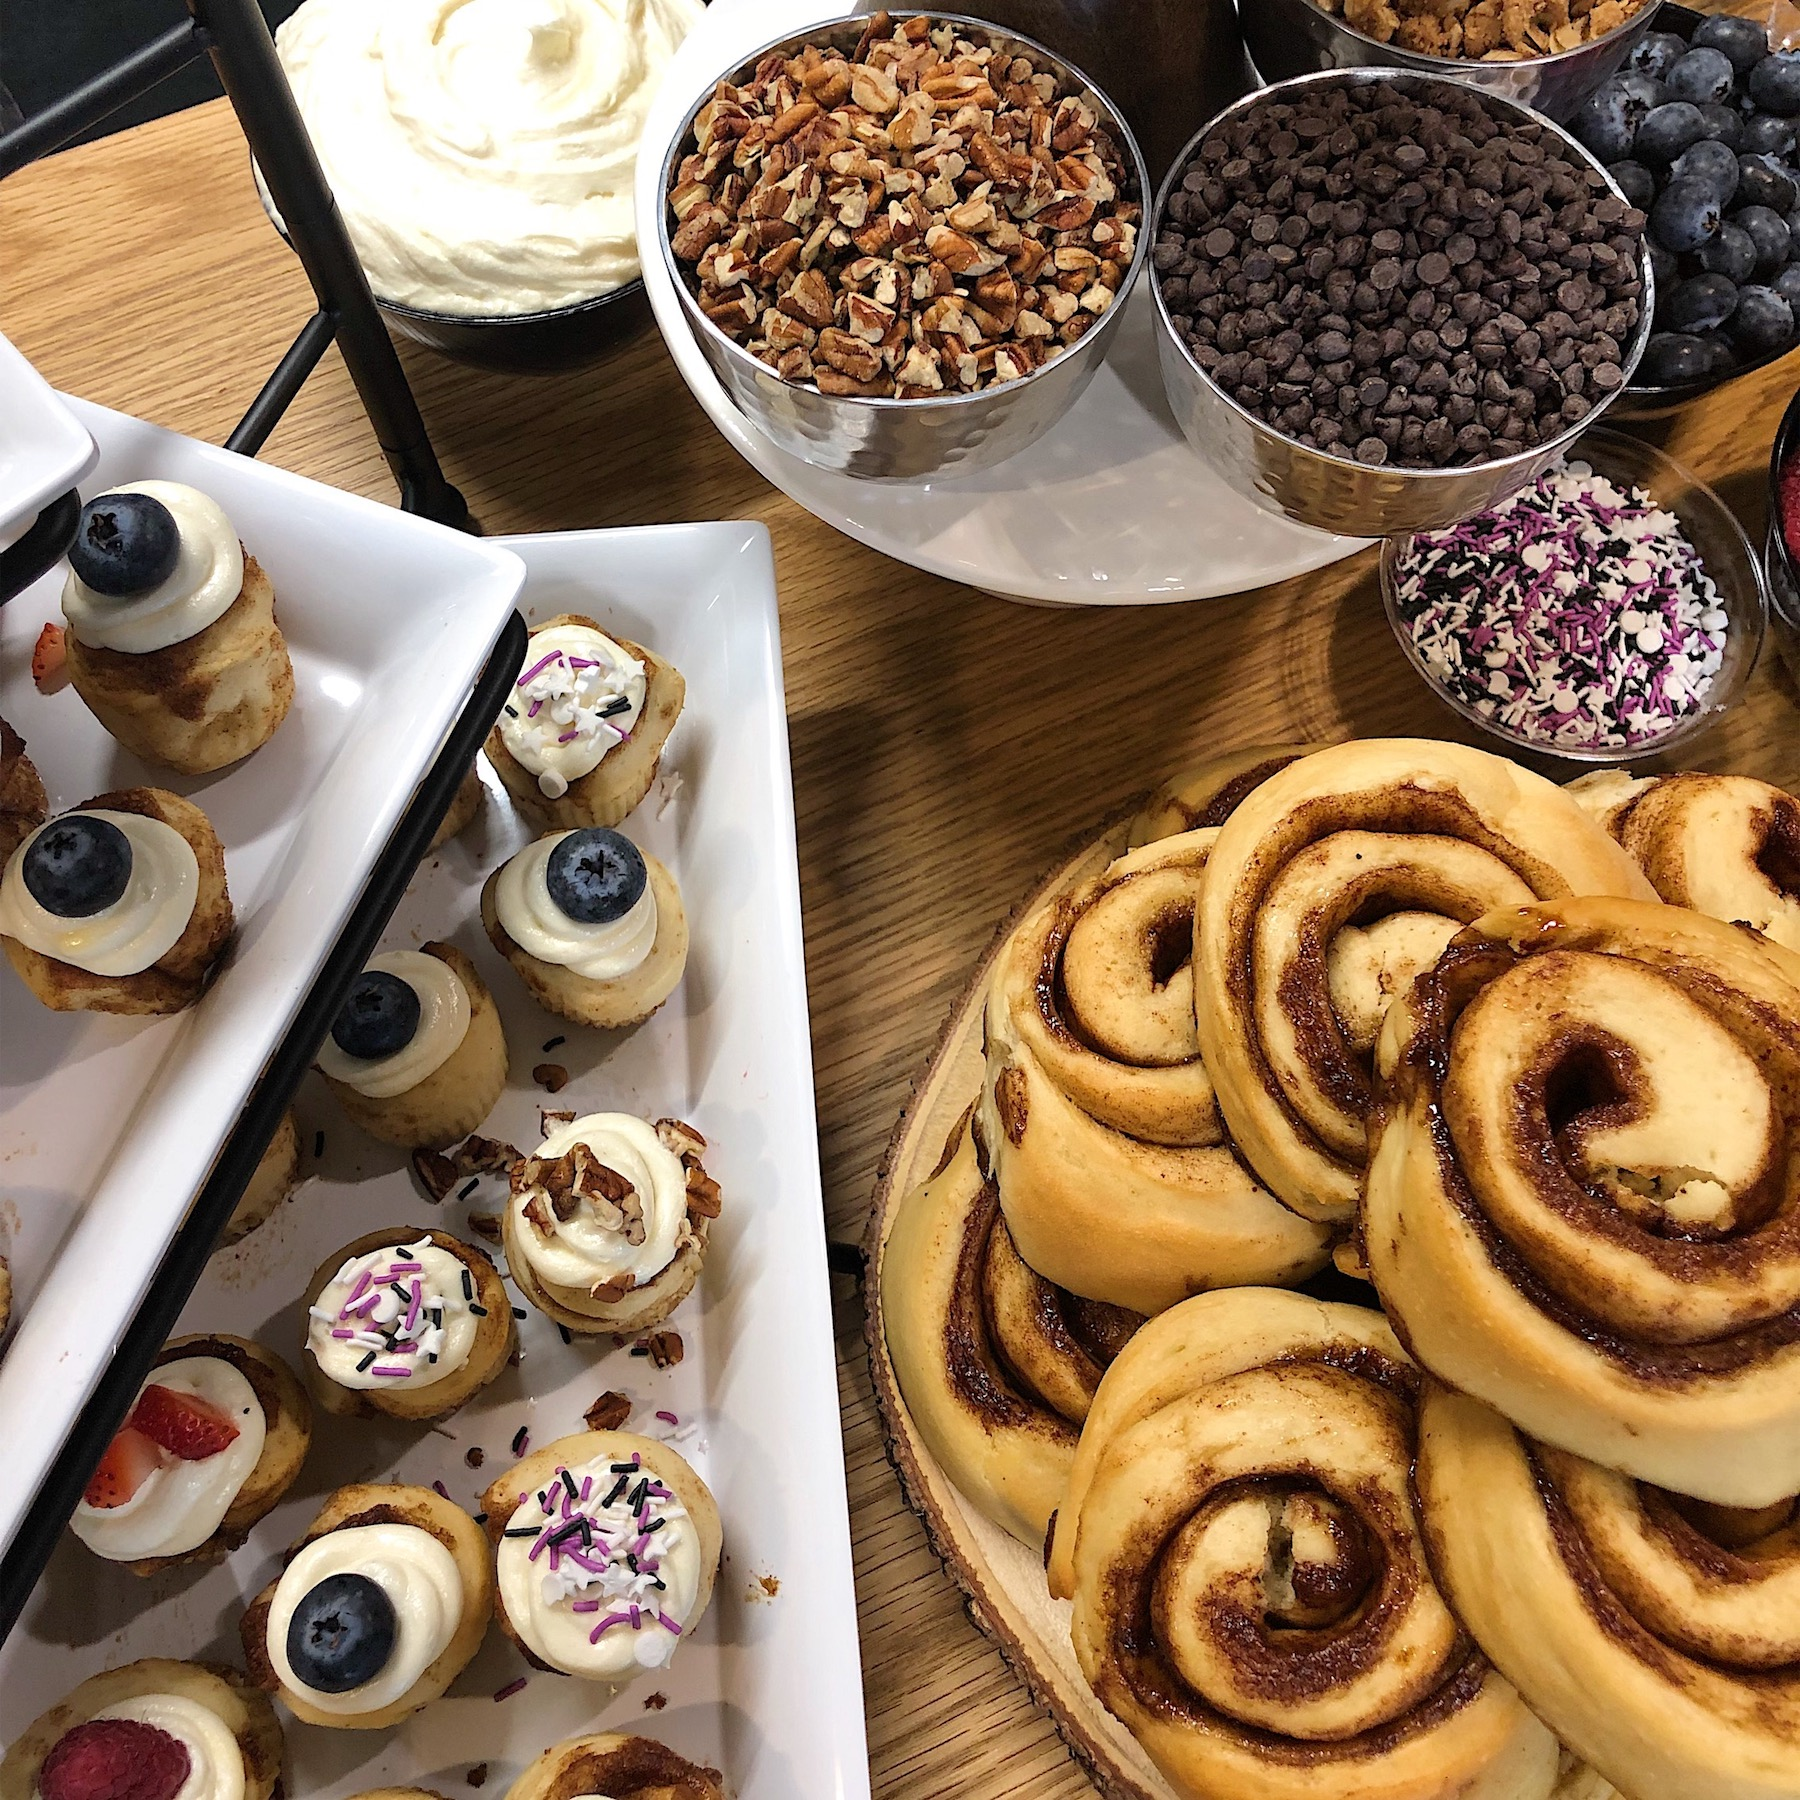 DIY CINNAMON ROLL BAR - Mix and match toppings to create your own Cinnaholic experience.